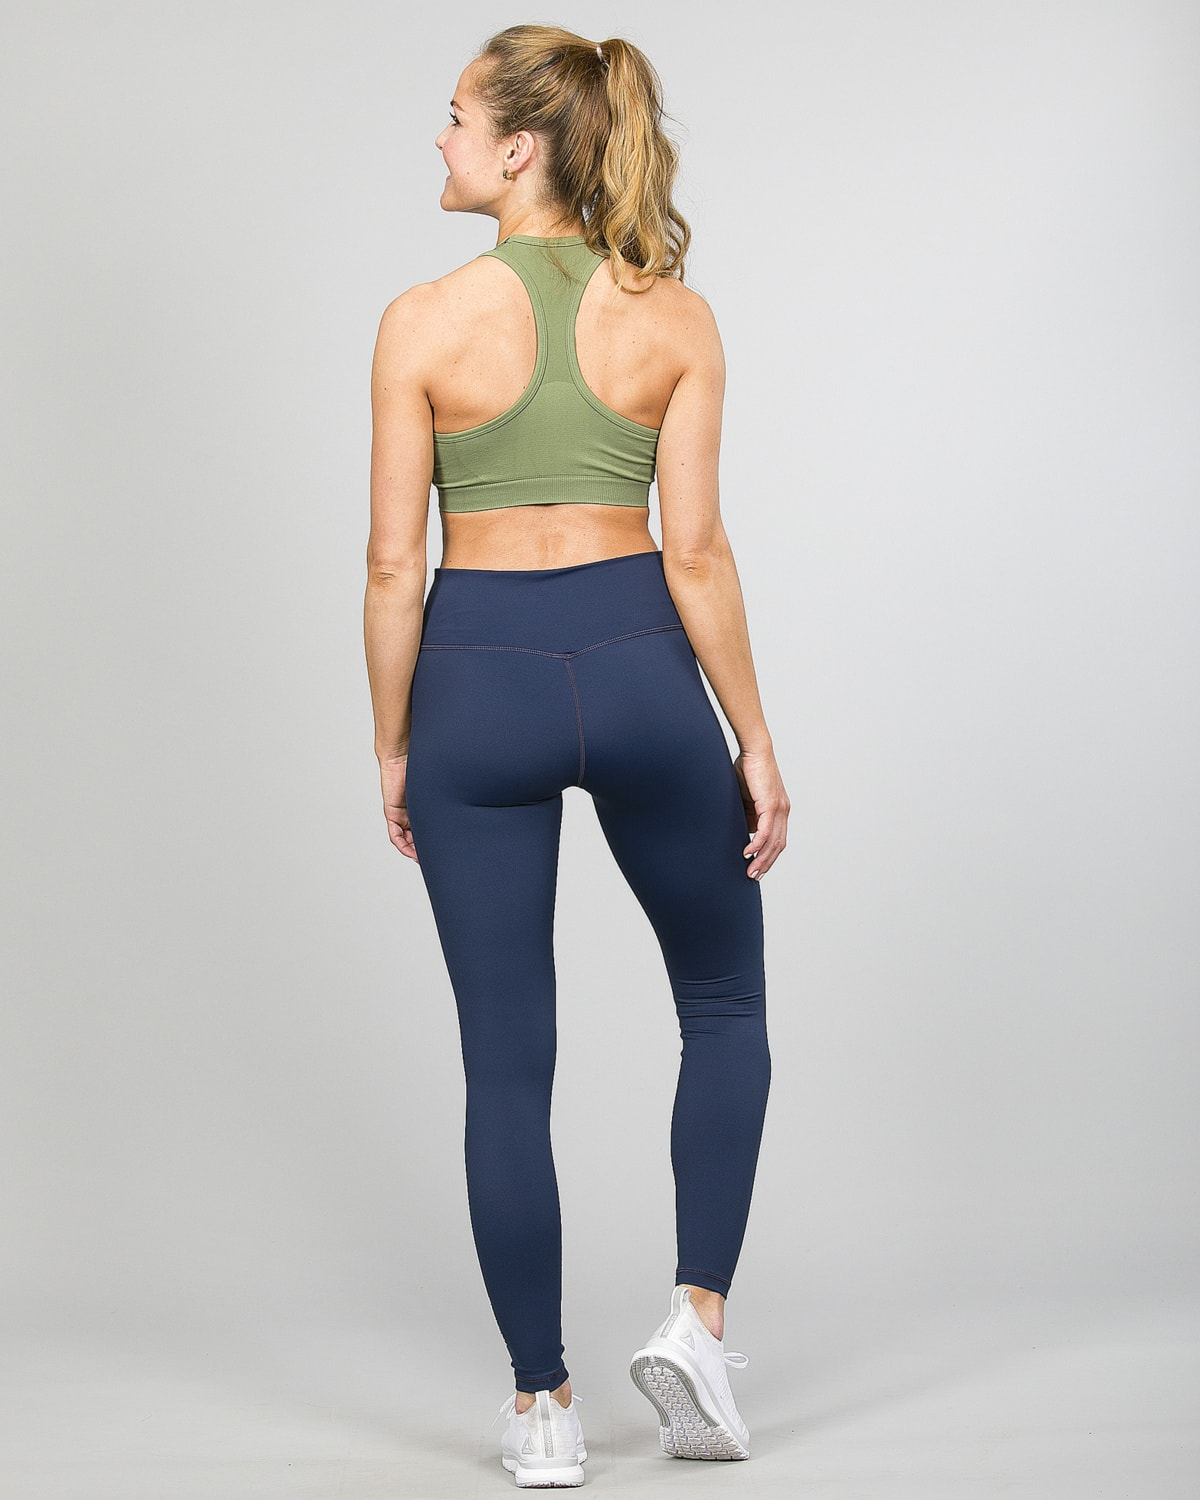 Famme Essential High Waist Legging – Midnight Blue ehwt-mb and Drop It Sports Bra Army Green vhwl-ag g